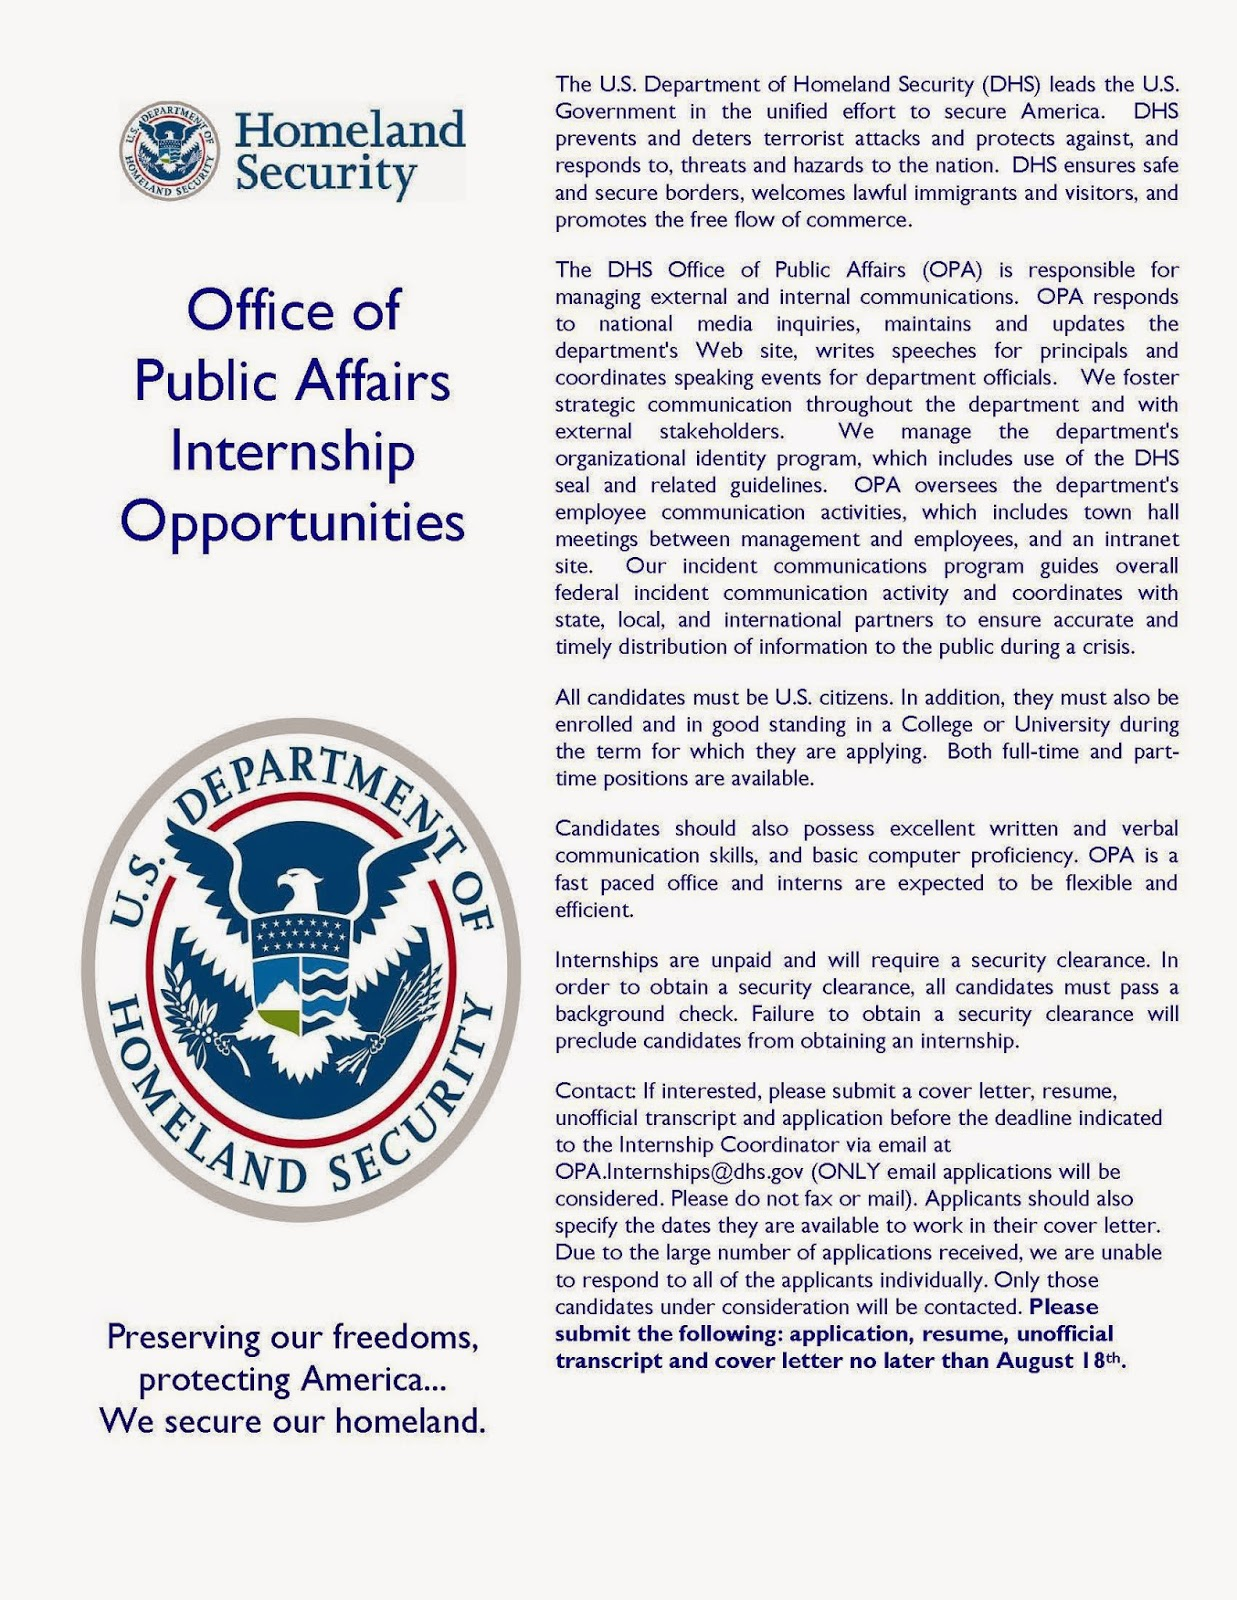 CCJSUSG News and Updates US Department of Homeland Securitys DHS Internship Opportunity